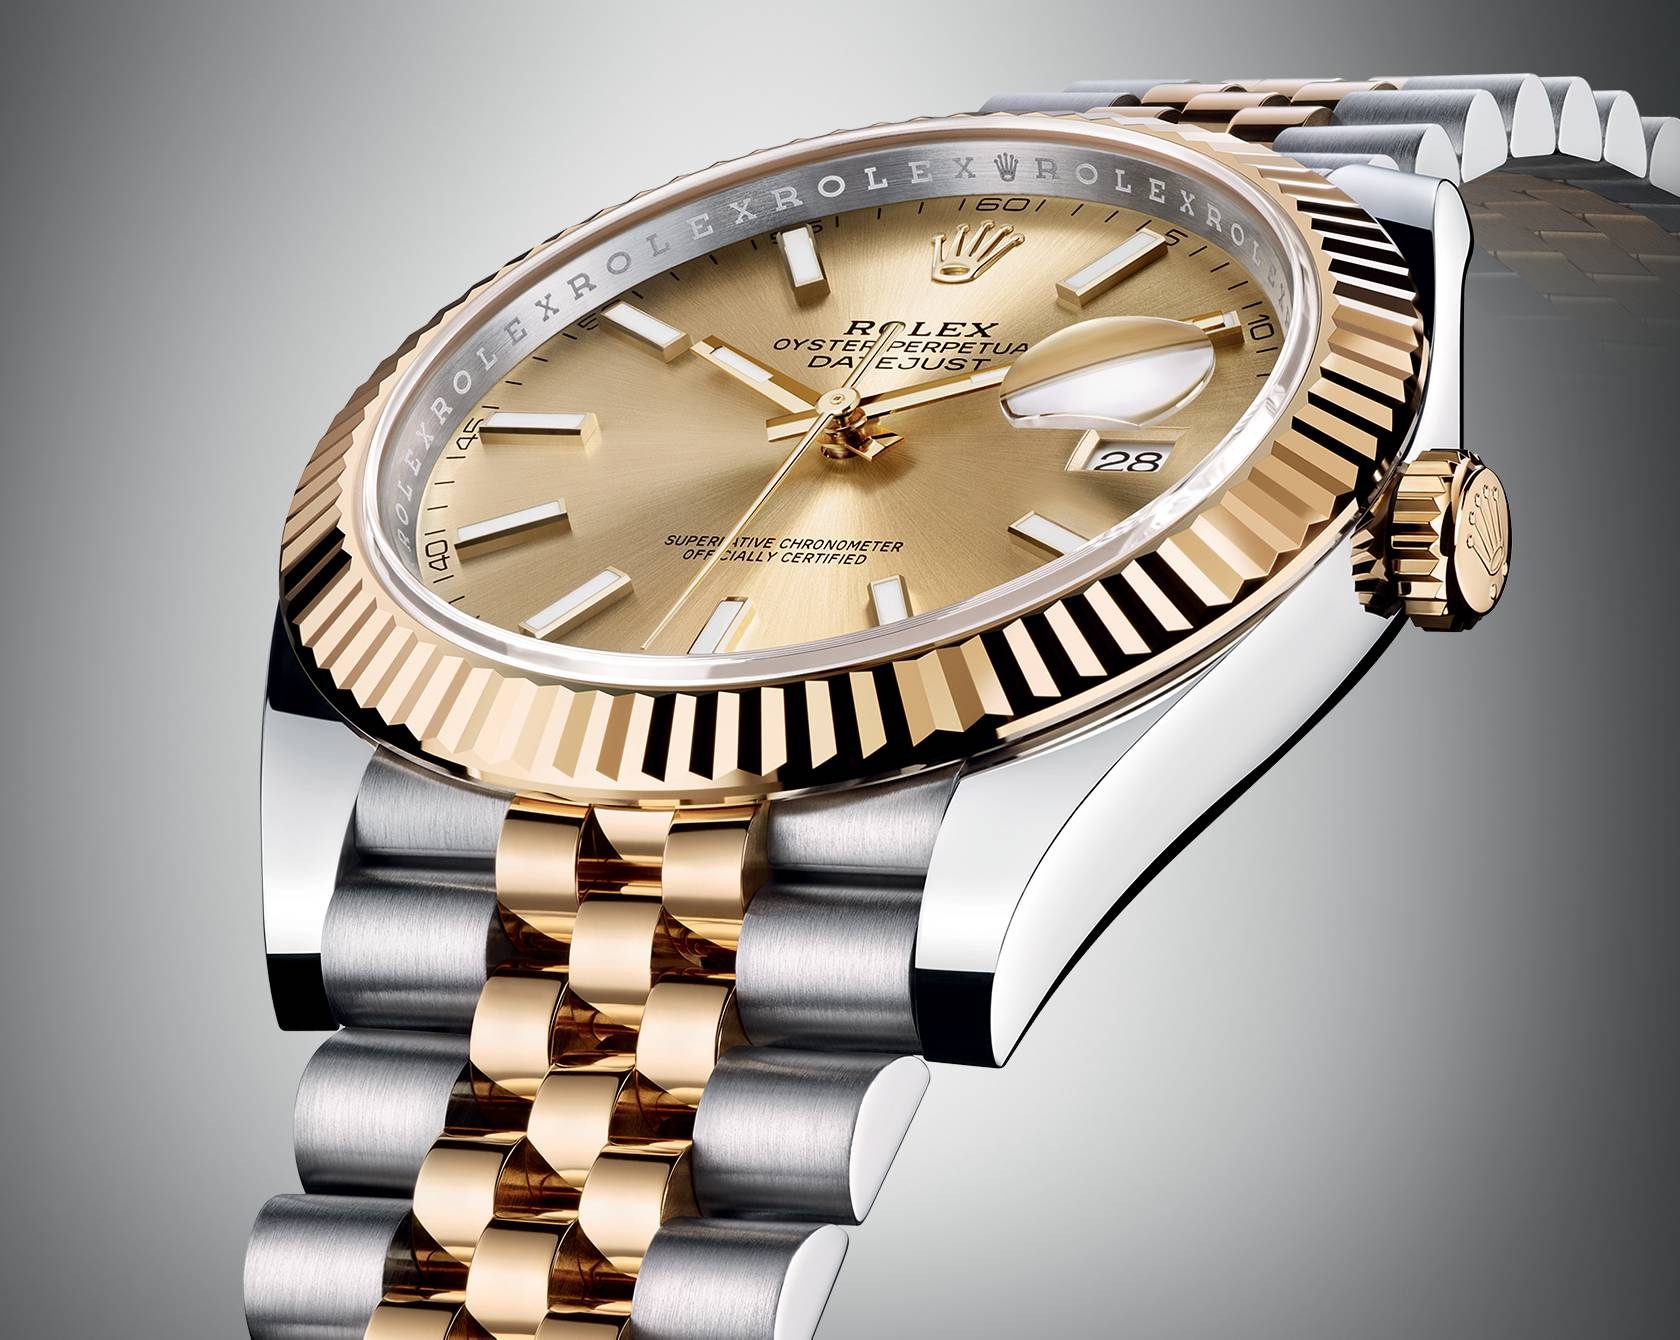 new-rolex-datejust-41-classic-watch.jpg